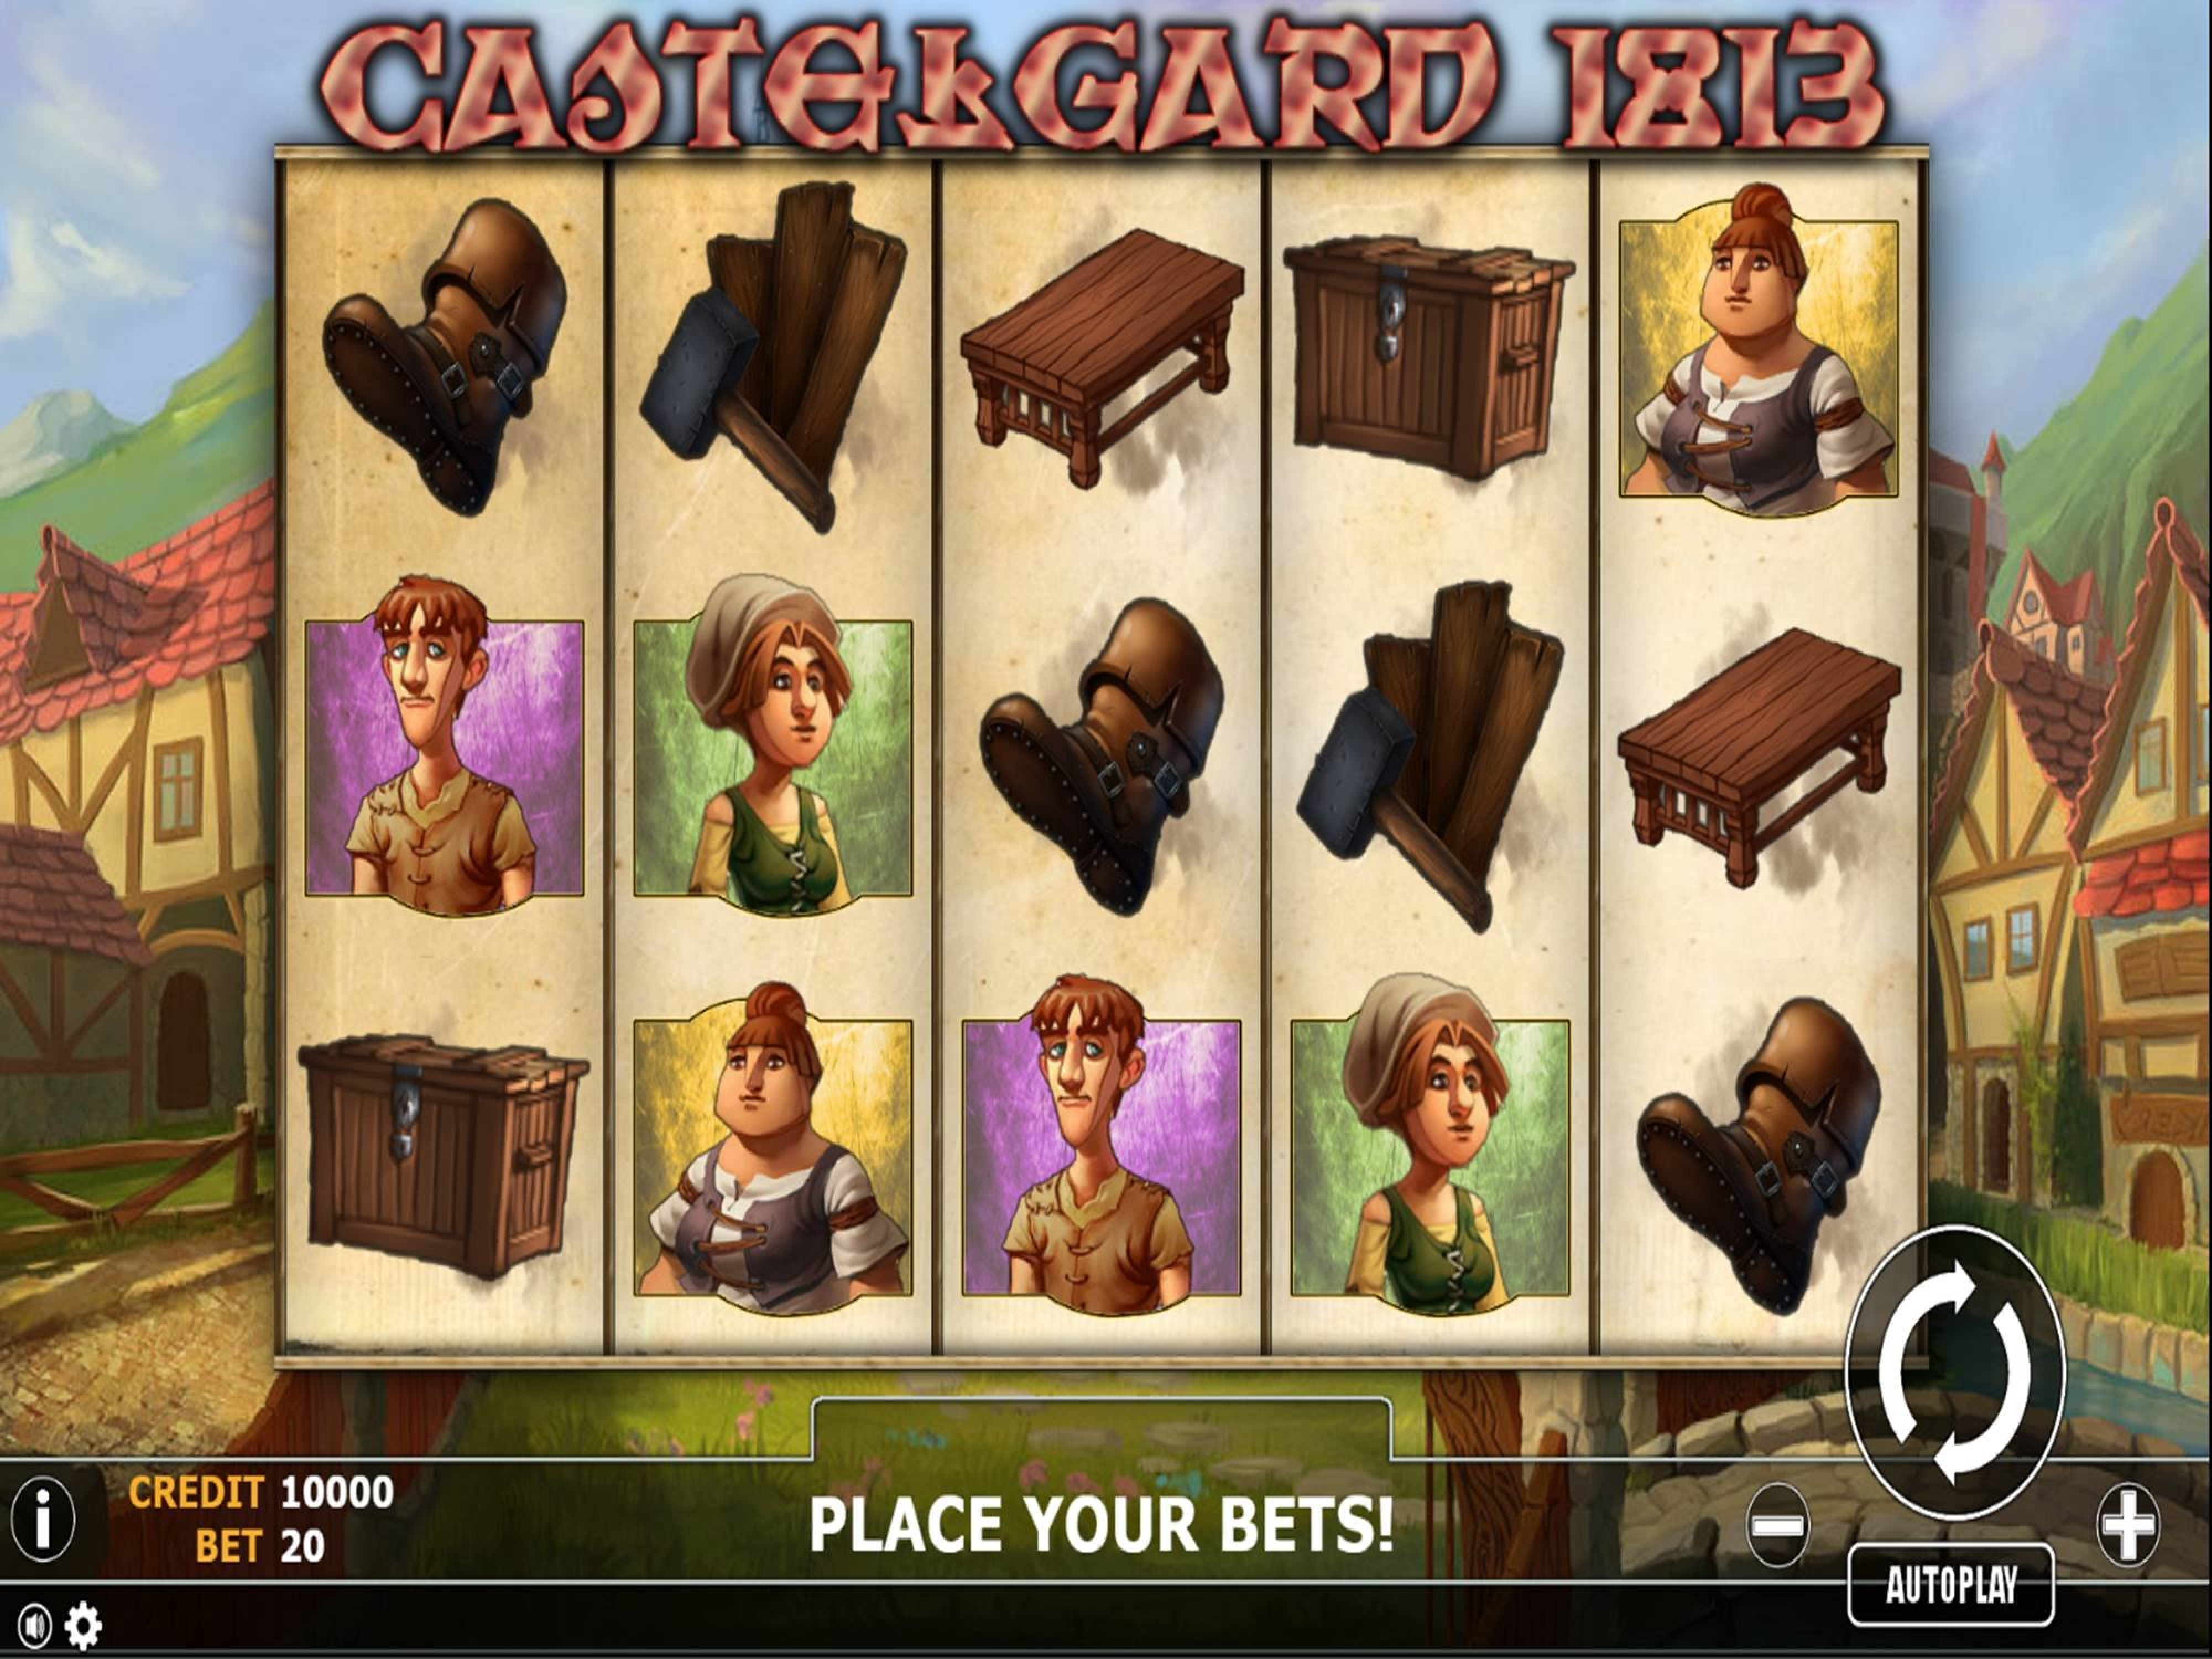 The Castlegard 1813 Online Slot Demo Game by Fils Game